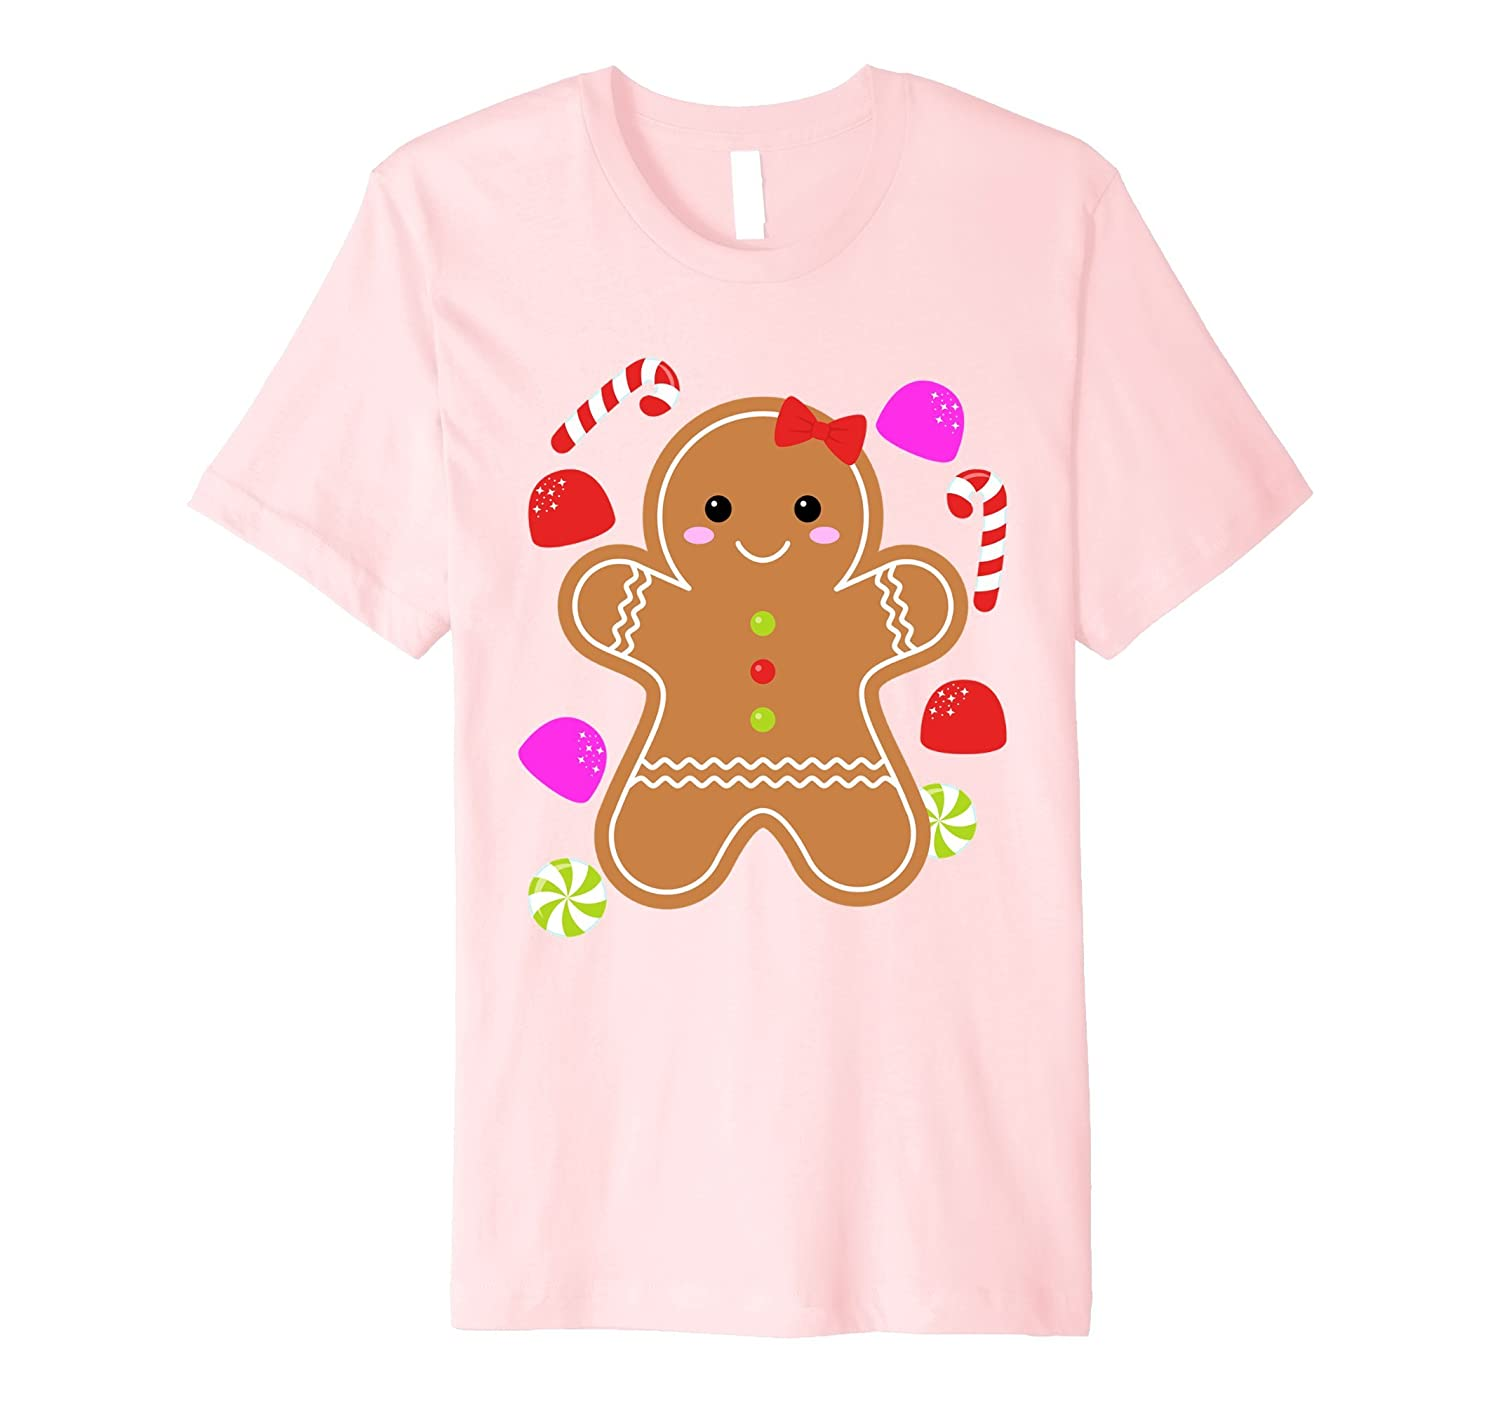 Adorable Christmas Pajama Cute Cookie Gift Shirt for Girls-FL